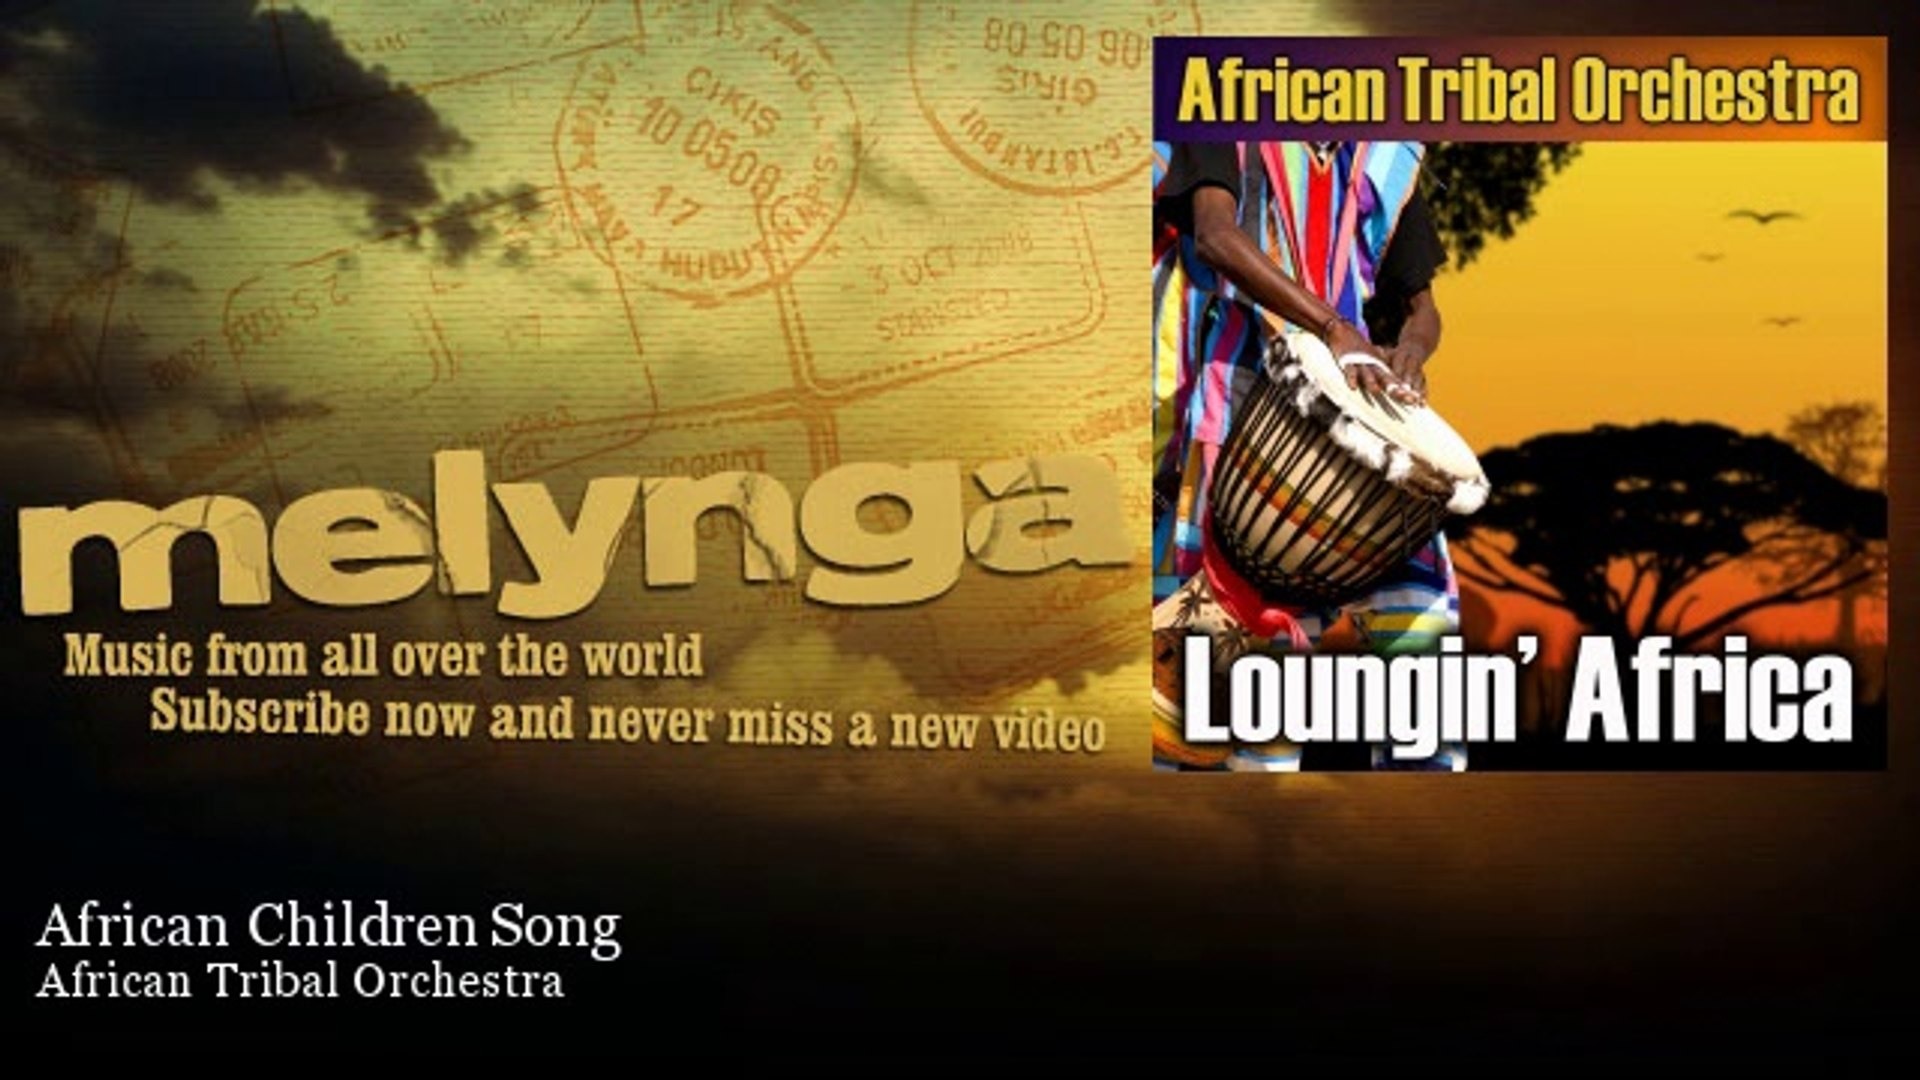 African Tribal Orchestra - African Children Song